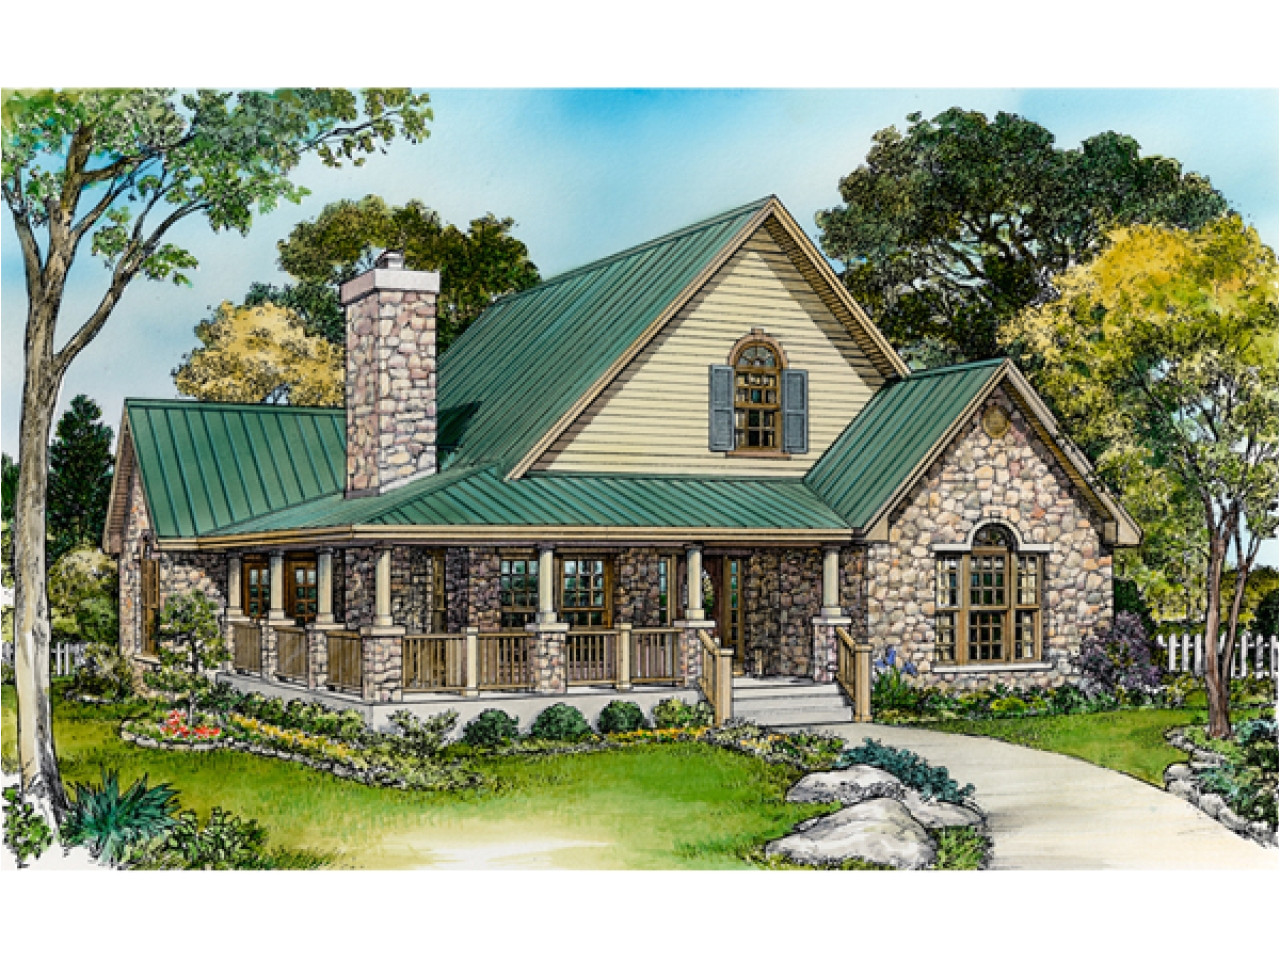 Unique Small Home Plans Small Rustic House Plans with Porches Unique Small House